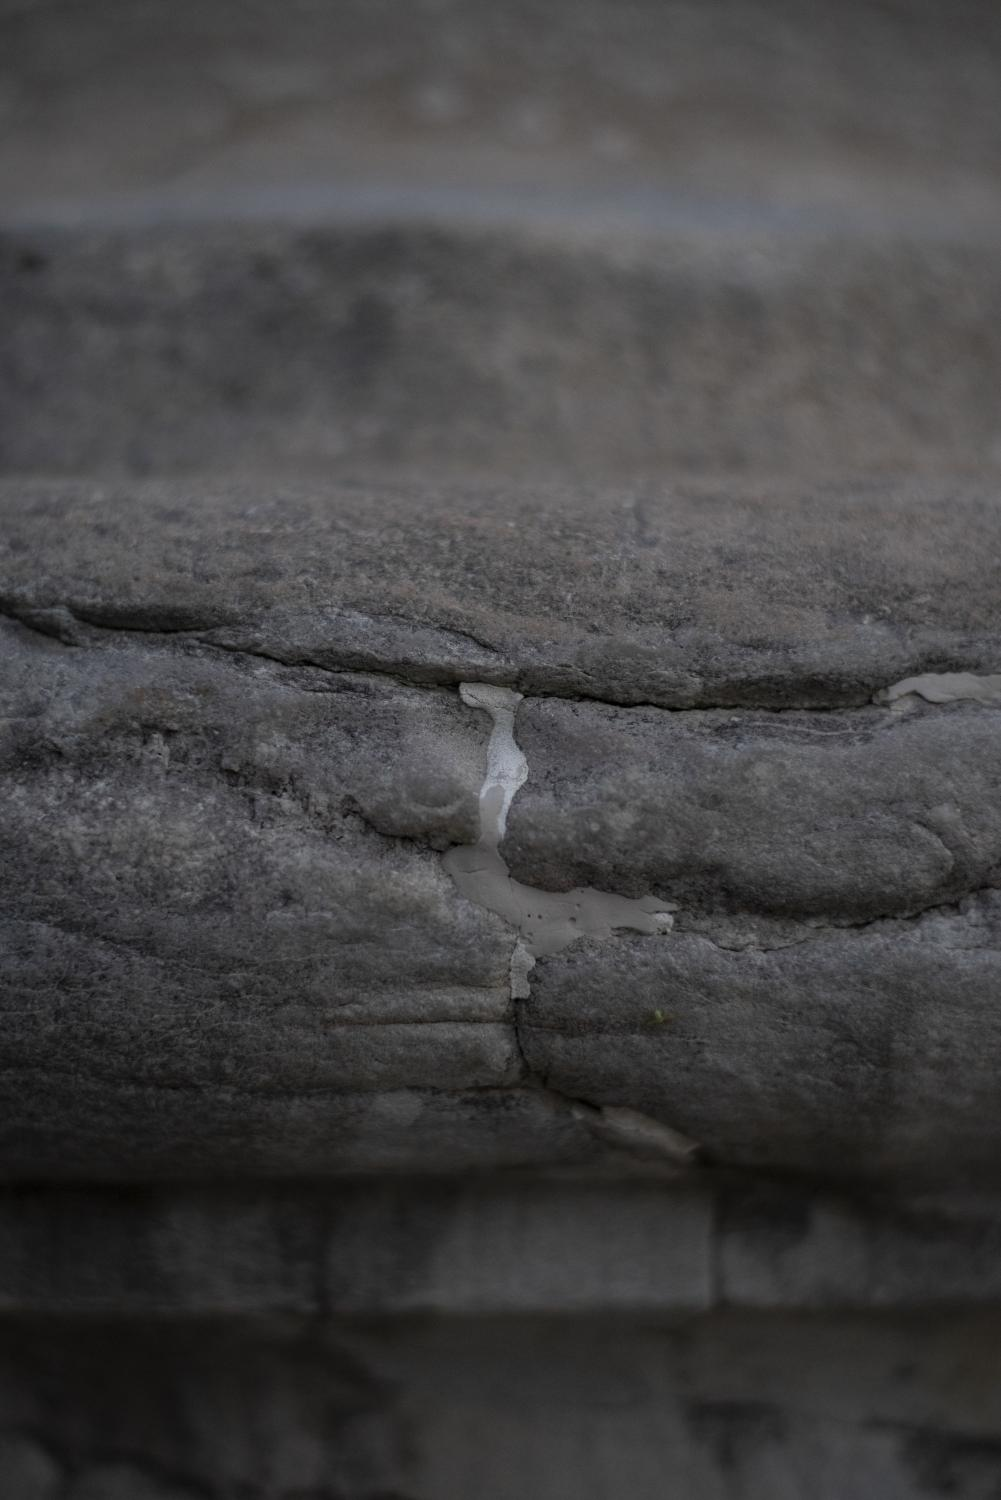 Sealant fills a crack in a column Oct. 12 at the University of Missouri in Columbia, Mo.